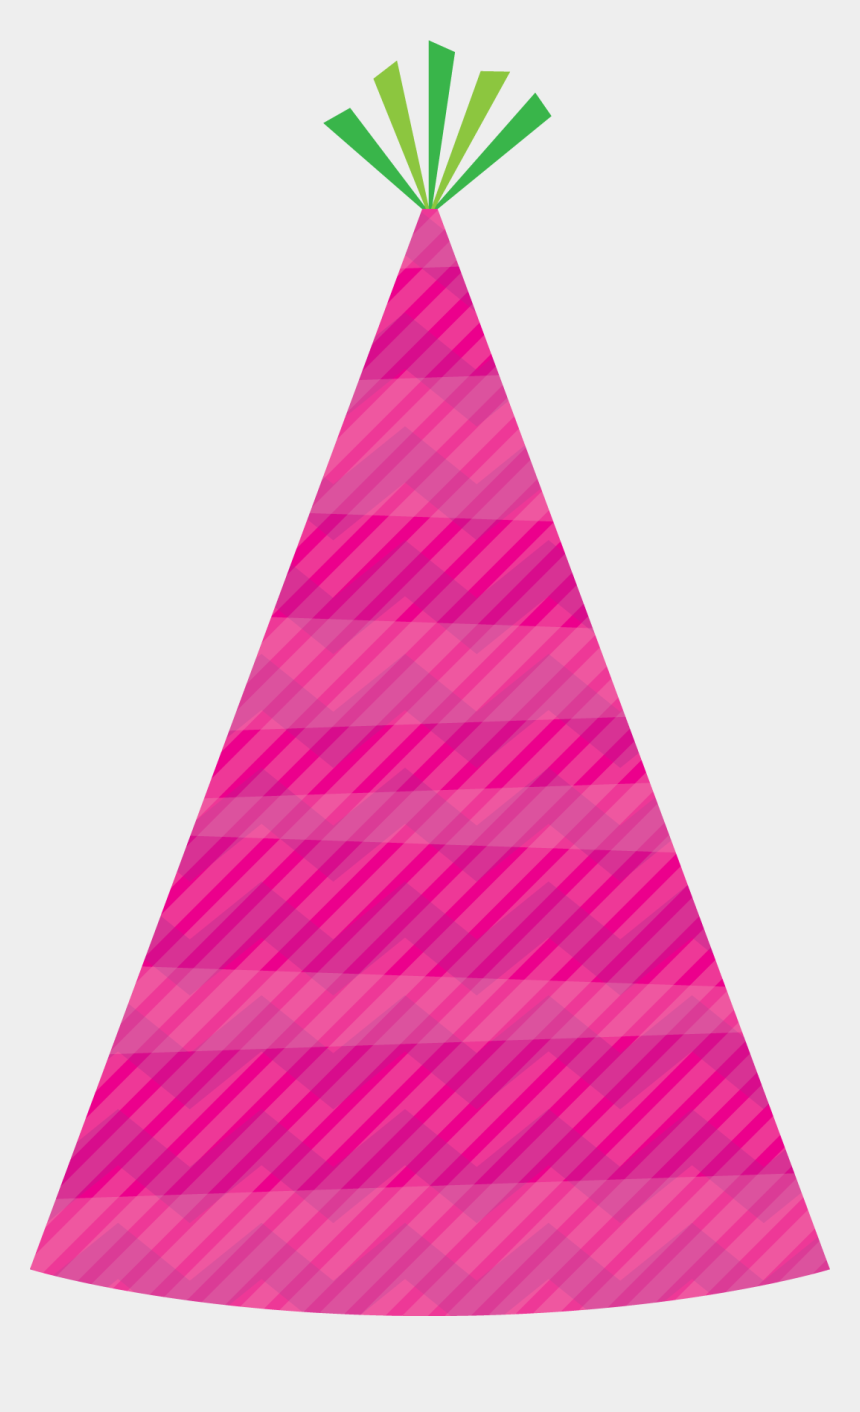 party hats clipart, Cartoons - Birthday Hat Clipart Png Image - Birthday Hat Png Pink